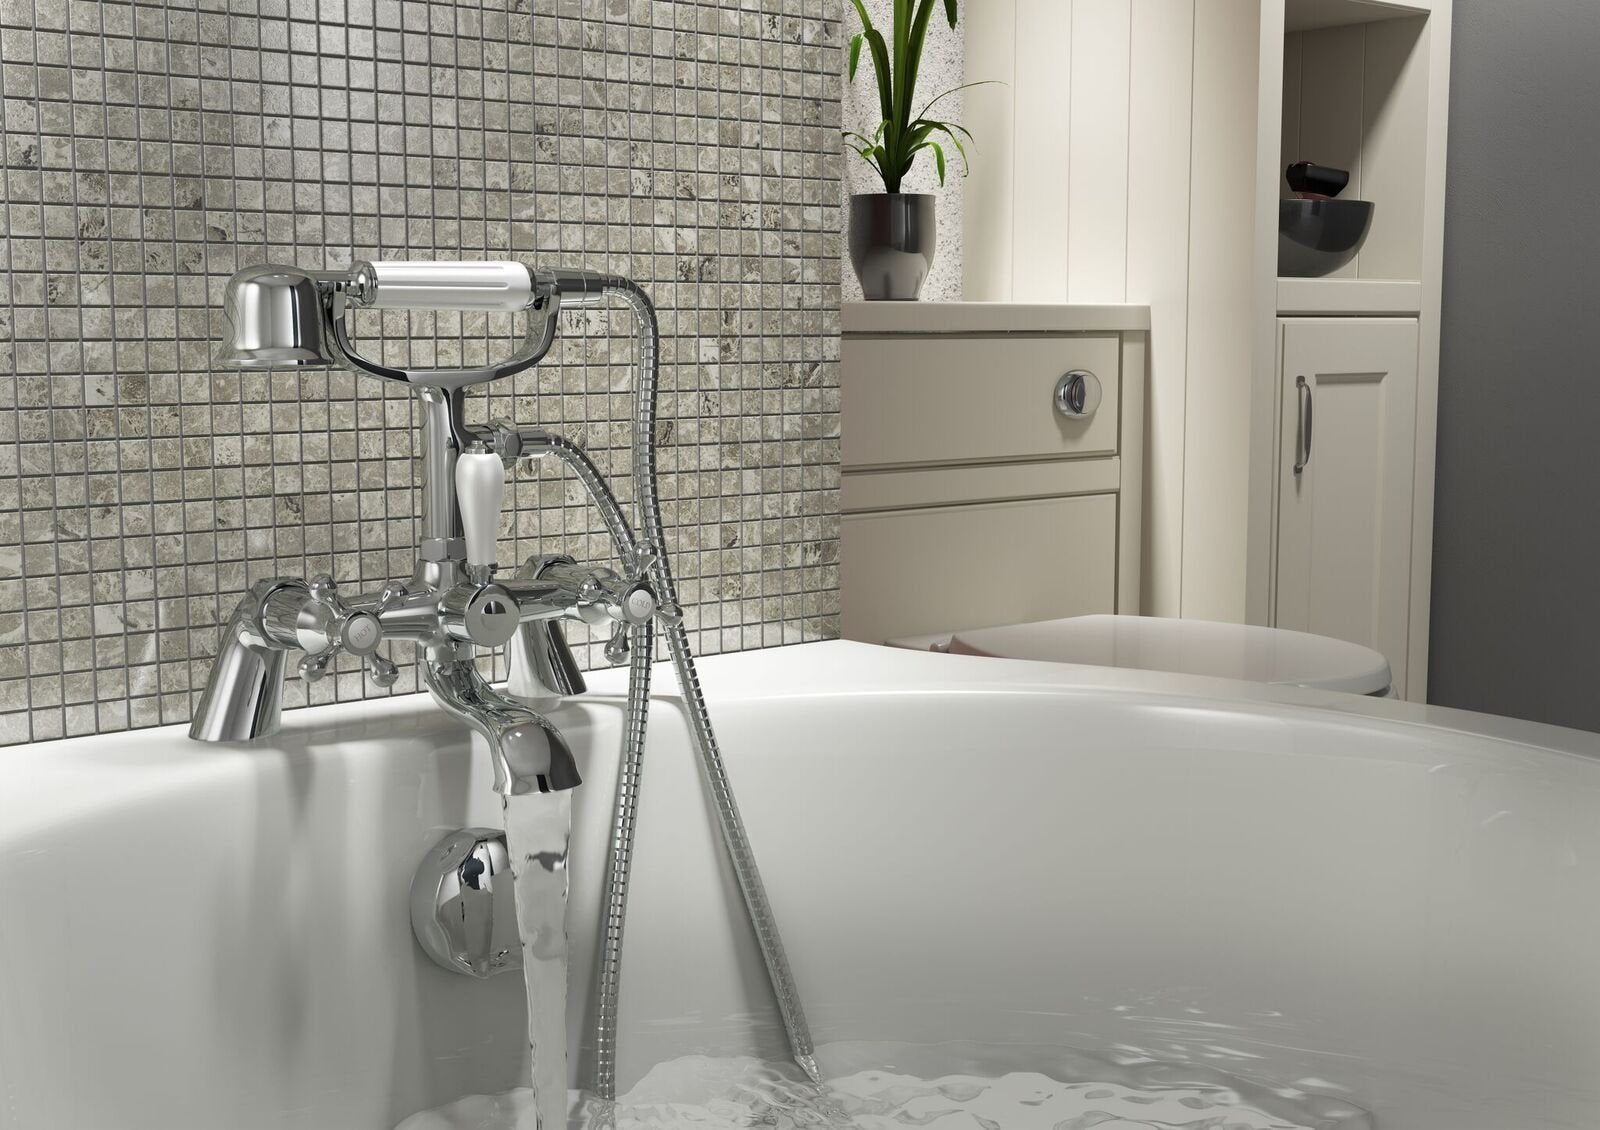 Cassellie Albert Bath Shower Mixer Tap - Chrome